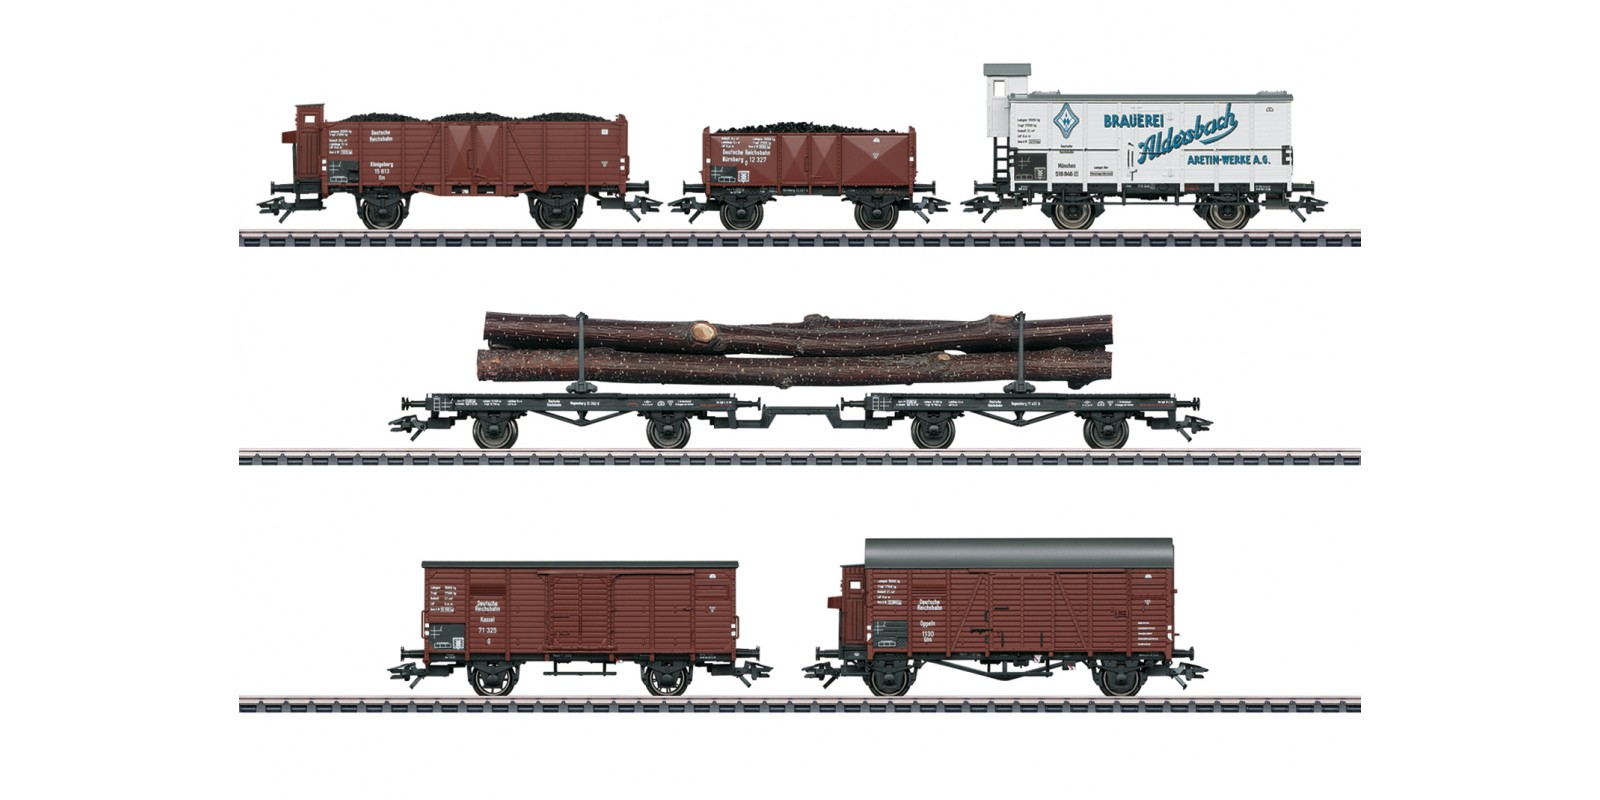 46017 Freight Car Set for the Class 95 Steam Locomotive